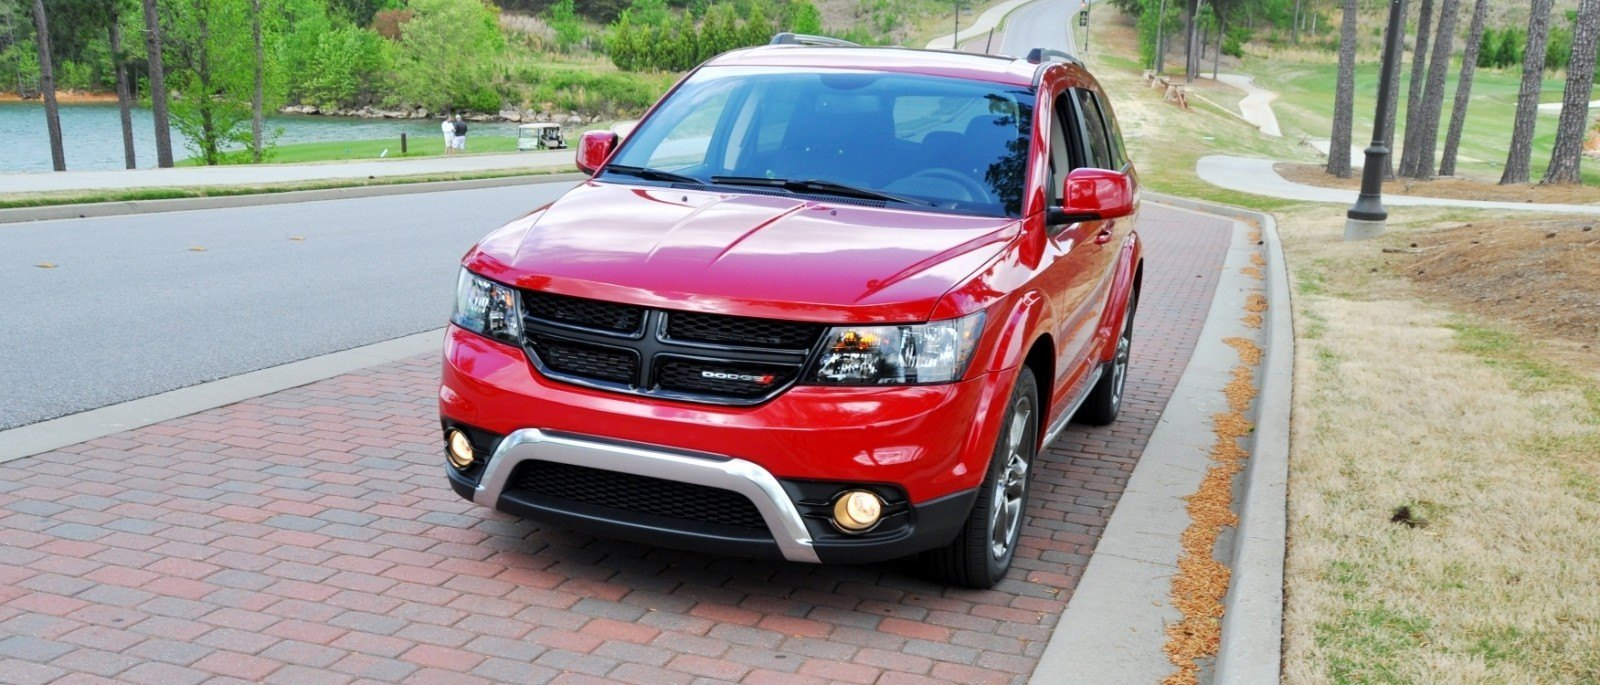 Road Test Review - 2014 Dodge Journey Crossroad - We Would Cross the Road to Avoid 33